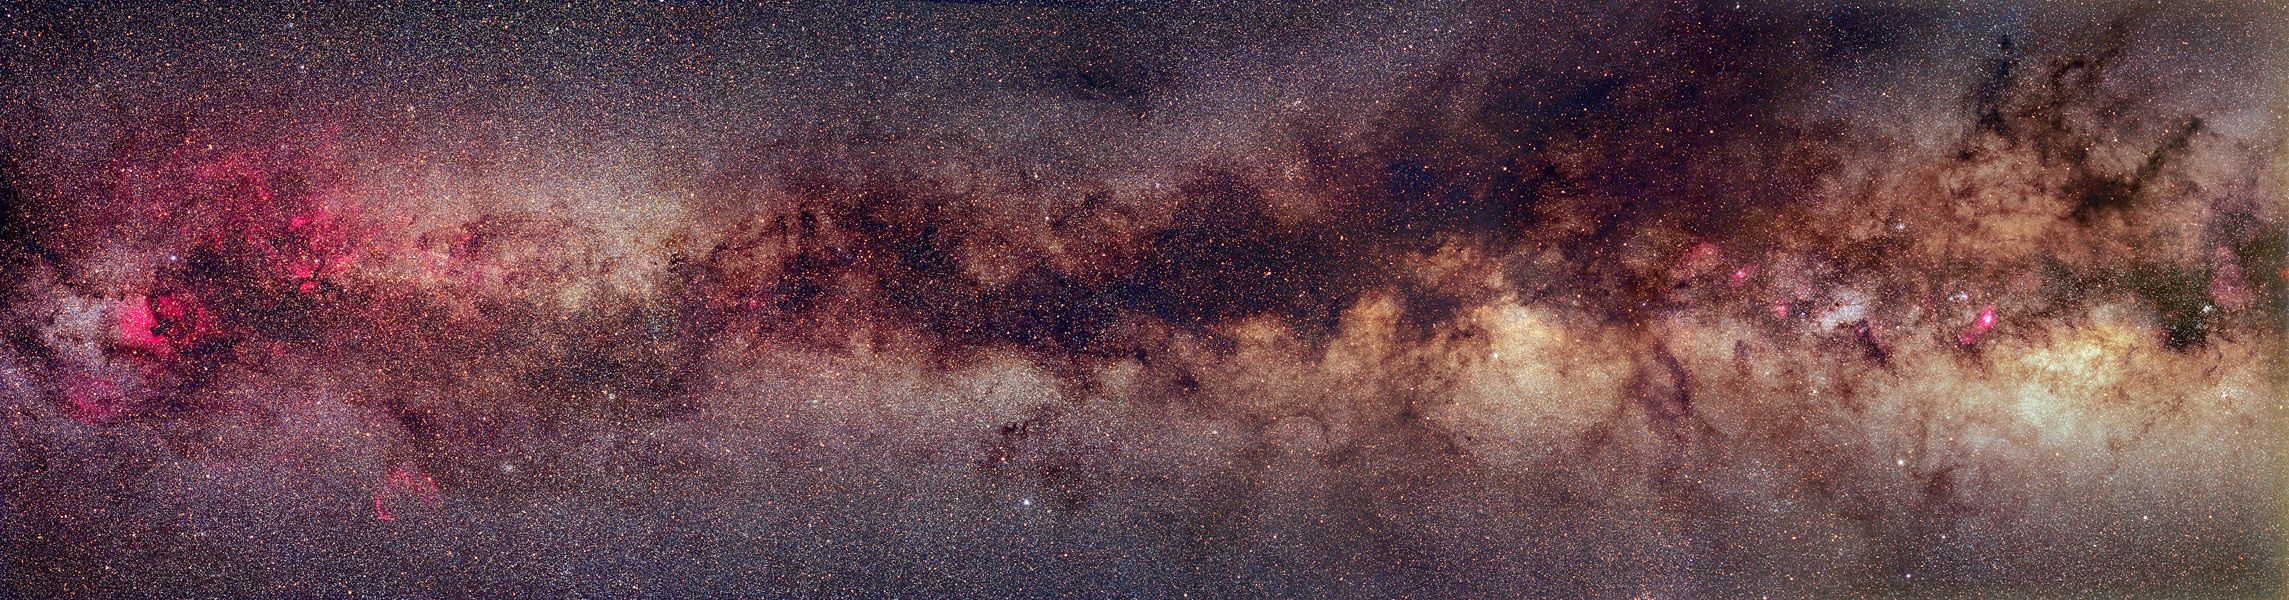 A Milky Way Band. Most bright stars in our Milky Way Galaxy reside in a disk. Since our Sun also resides in this disk, these stars appear to us as a diffuse band that circles the sky. The above panorama of a northern band of the Milky Way's disk covers 90 degrees and is a digitally created mosaic of several independent exposures.